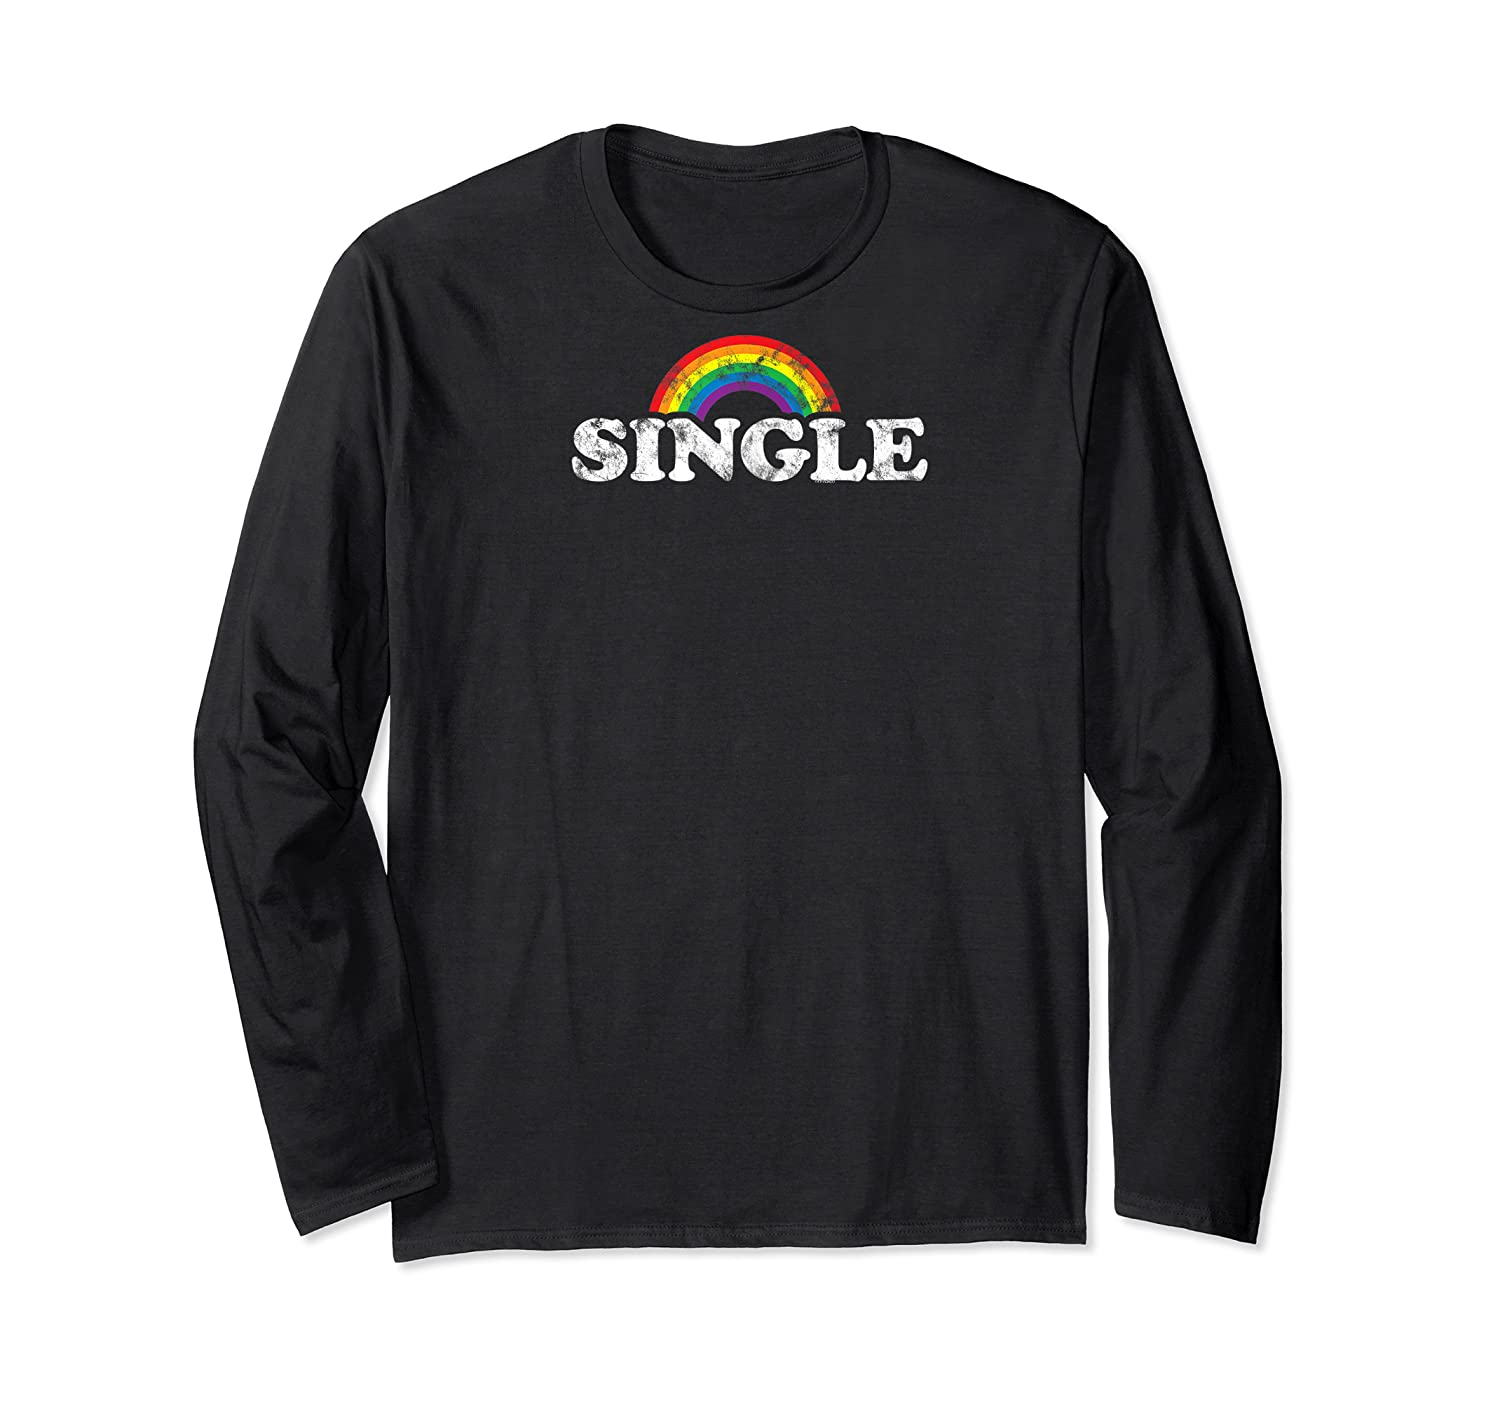 S Single With Rainbow   Gay Pride Lgbt Shirt For Guys Long Sleeve T-shirt